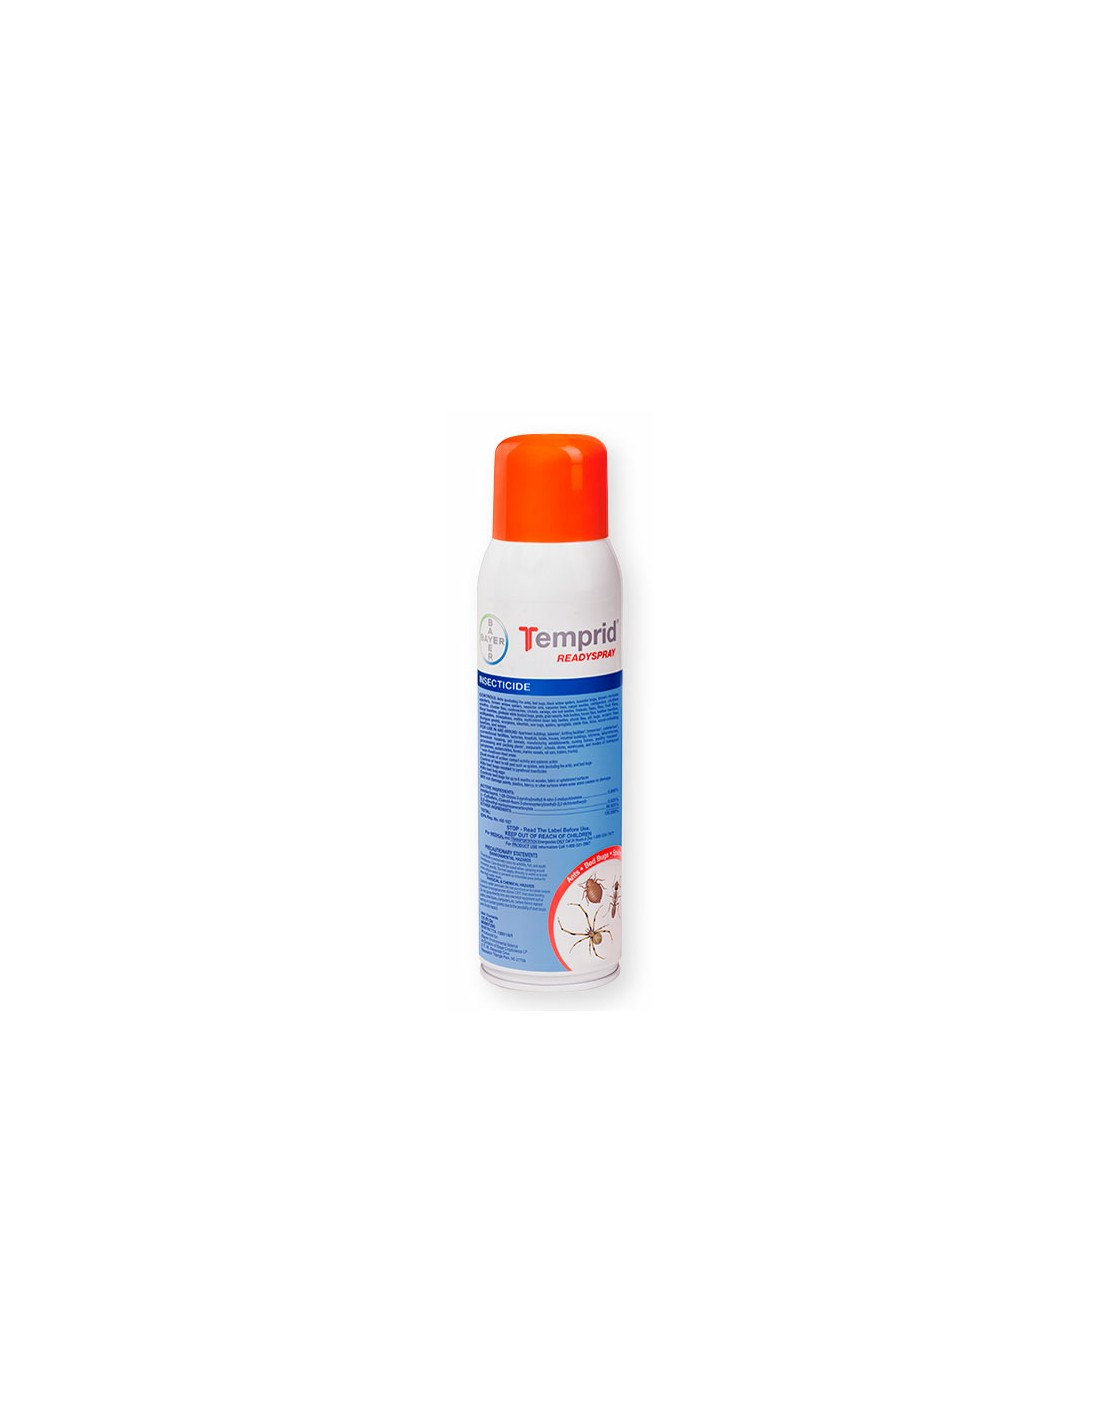 Temprid Ready Spray Insecticide